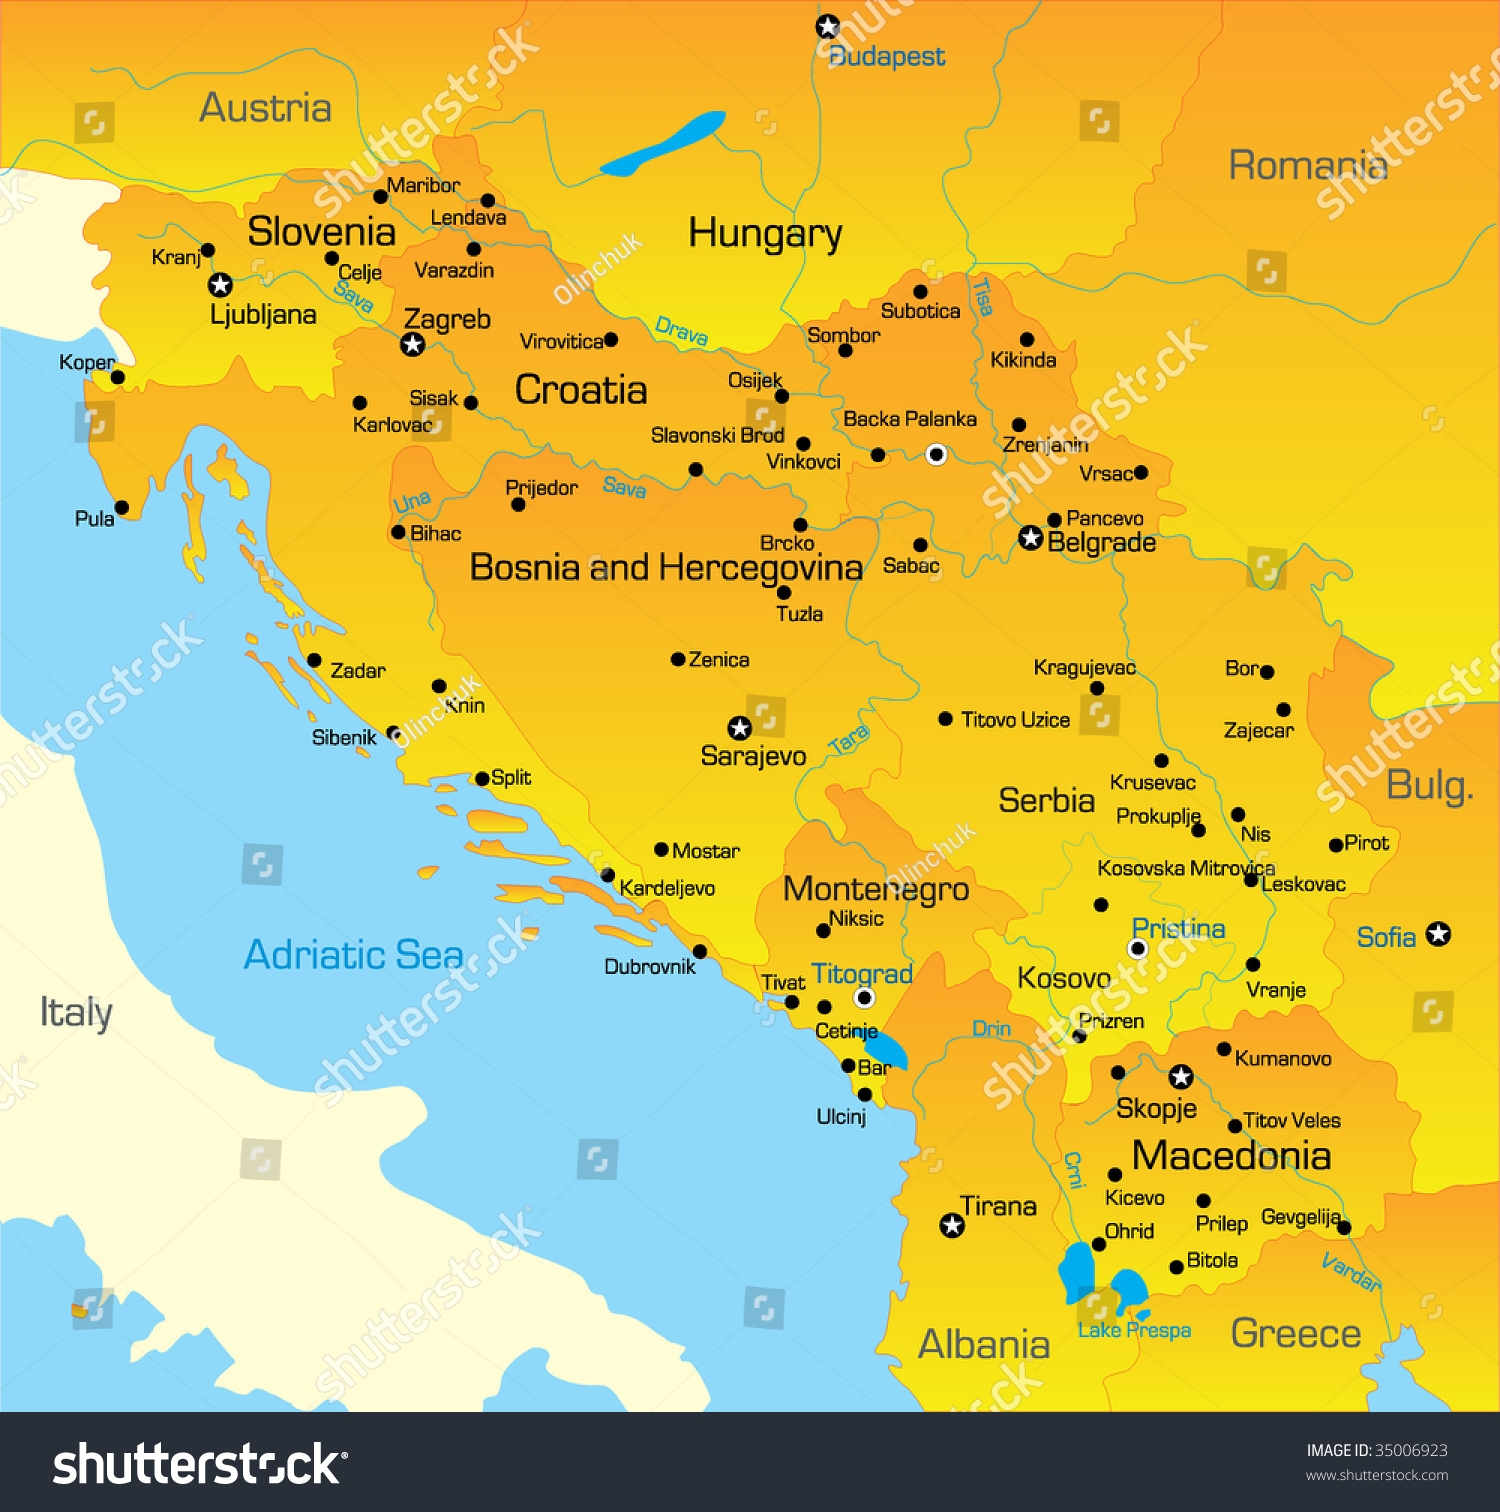 Vector Color Map Of Balkan Region - 35006923 : Shutterstock